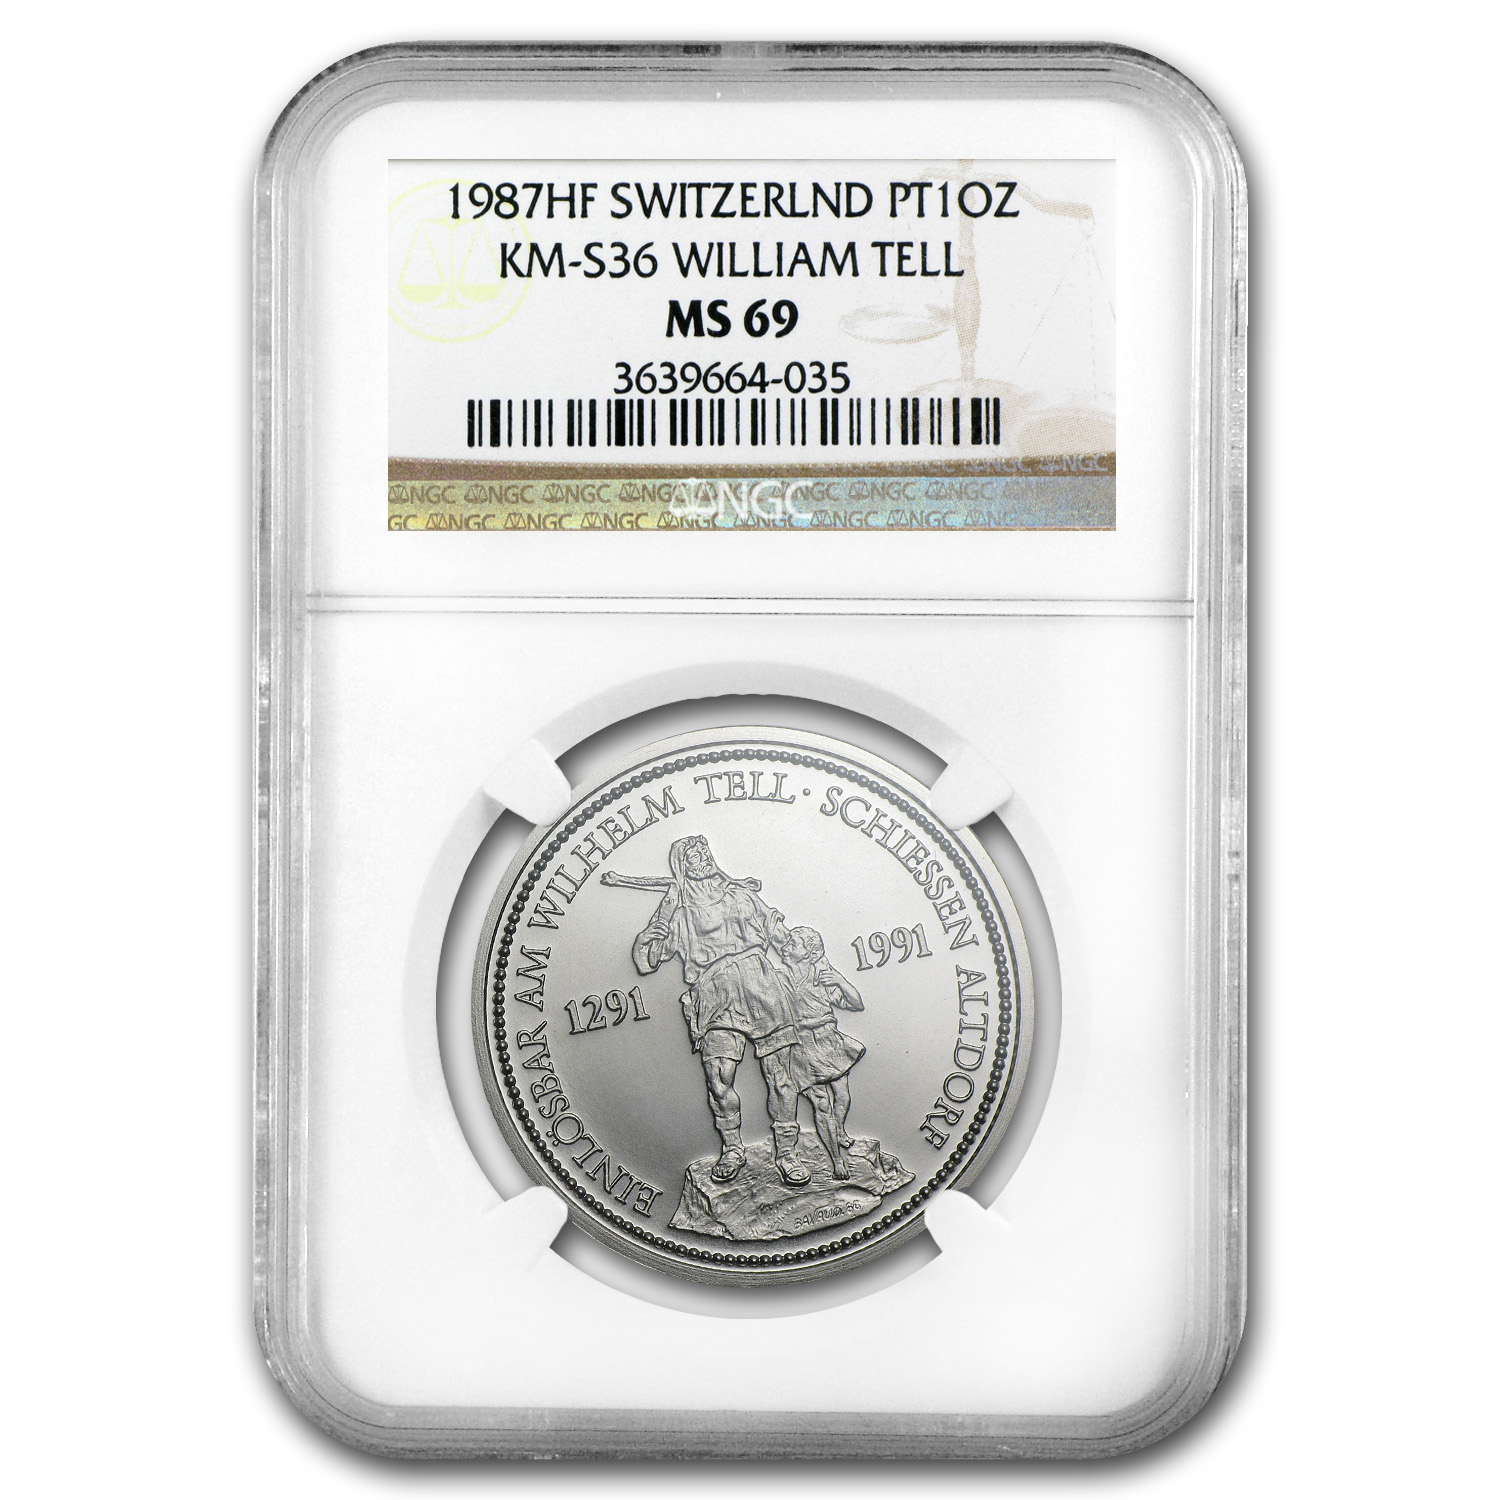 1987 Switzerland 1 oz Platinum William Tell MS-69 NGC